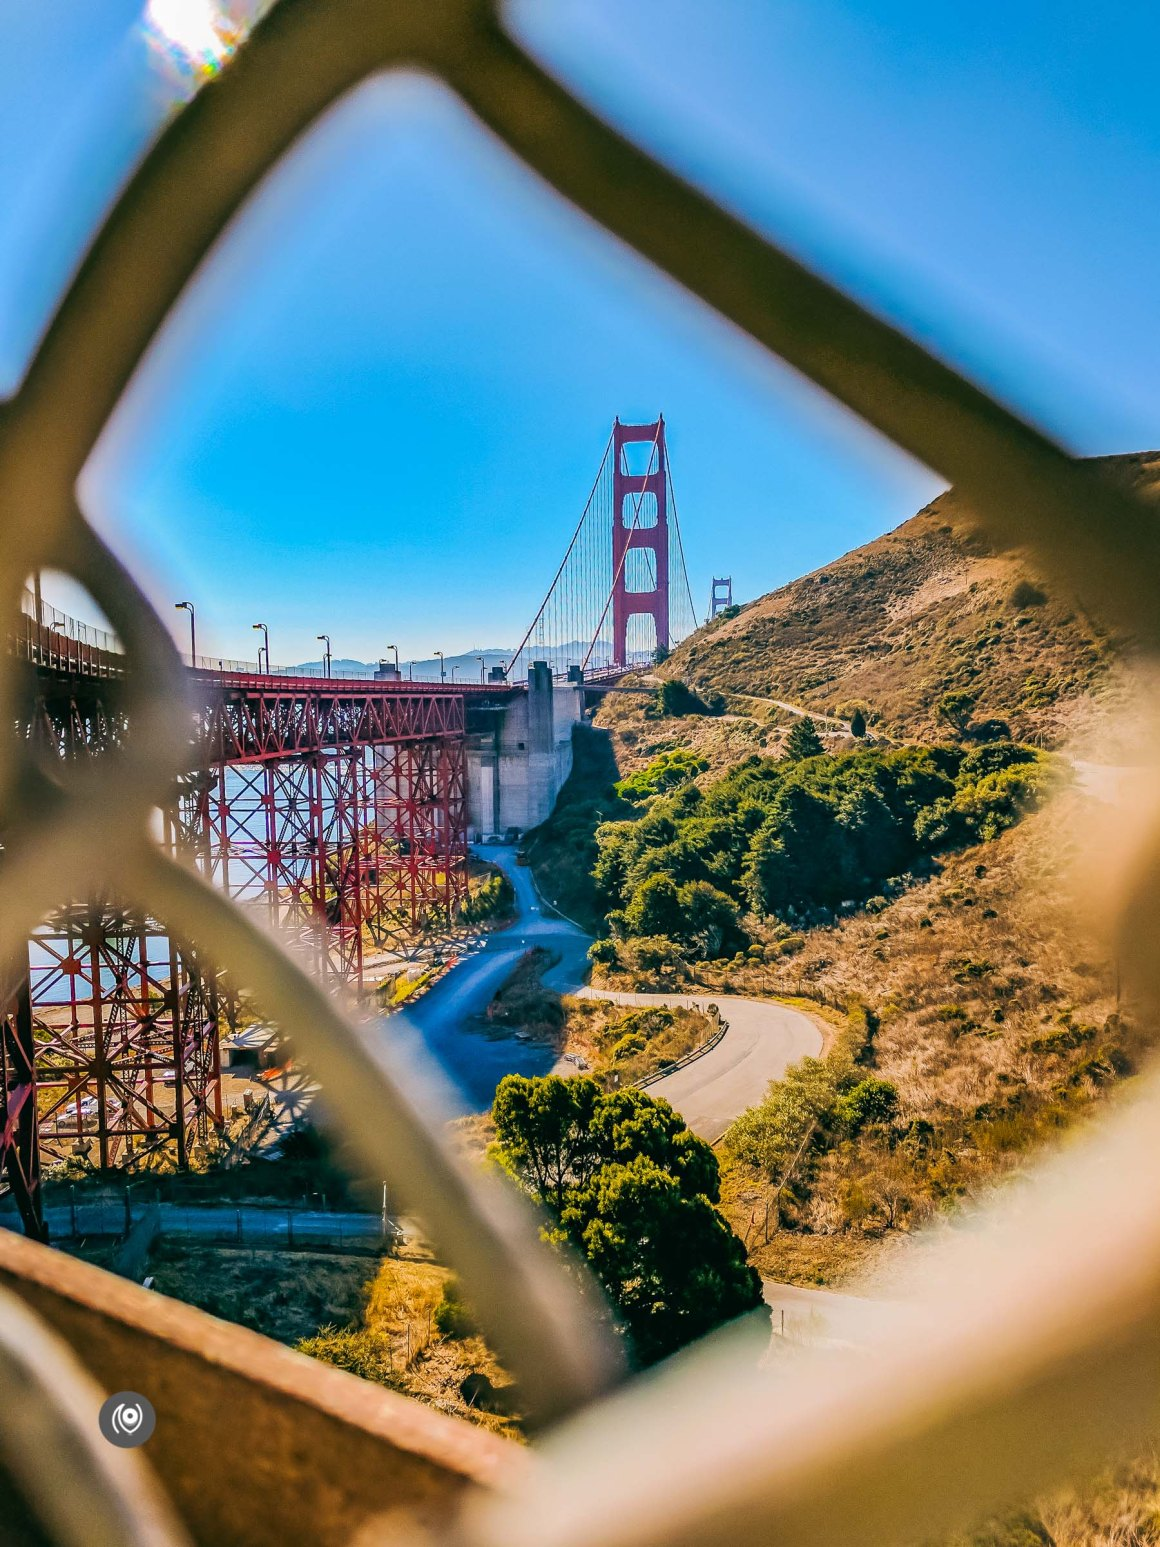 Naina.co, Golden Gate Bridge, San Francisco, Bay Bridge, San Francisco Bay, NAINAxGoogle, EyesForDesinations, EyesForSF, Travel Photographer, Travel Blogger, Lifestyle Photographer, Lifestyle Blogger, Naina Redhu, Professional Photographer, Professional Blogger, Alcatraz, Travel, USA, America